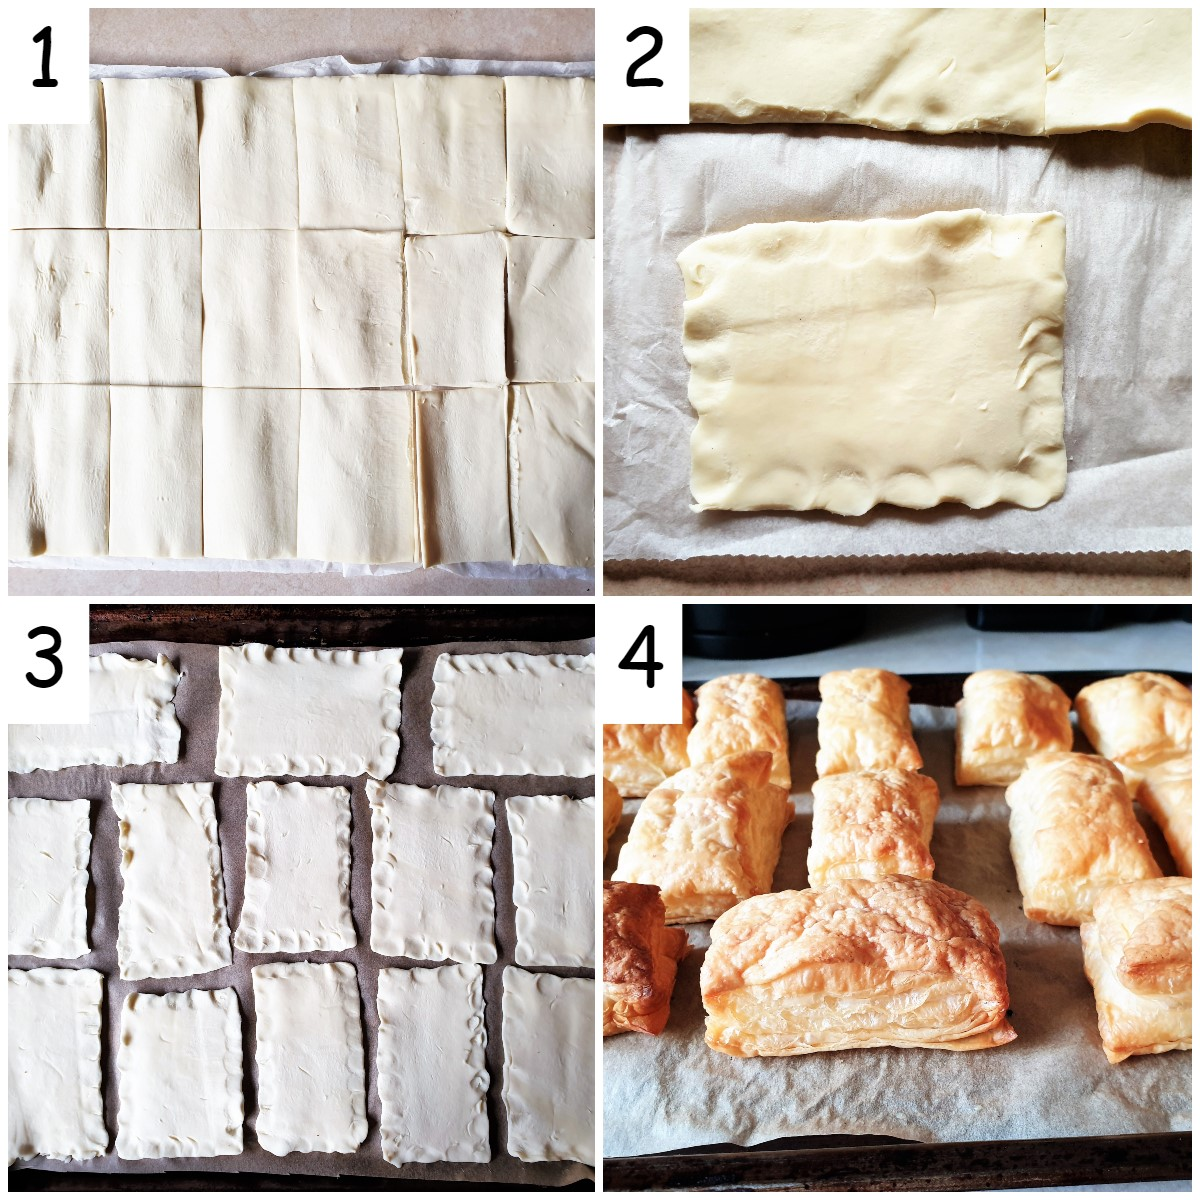 Steps for baking the puff pastry for custard slices.